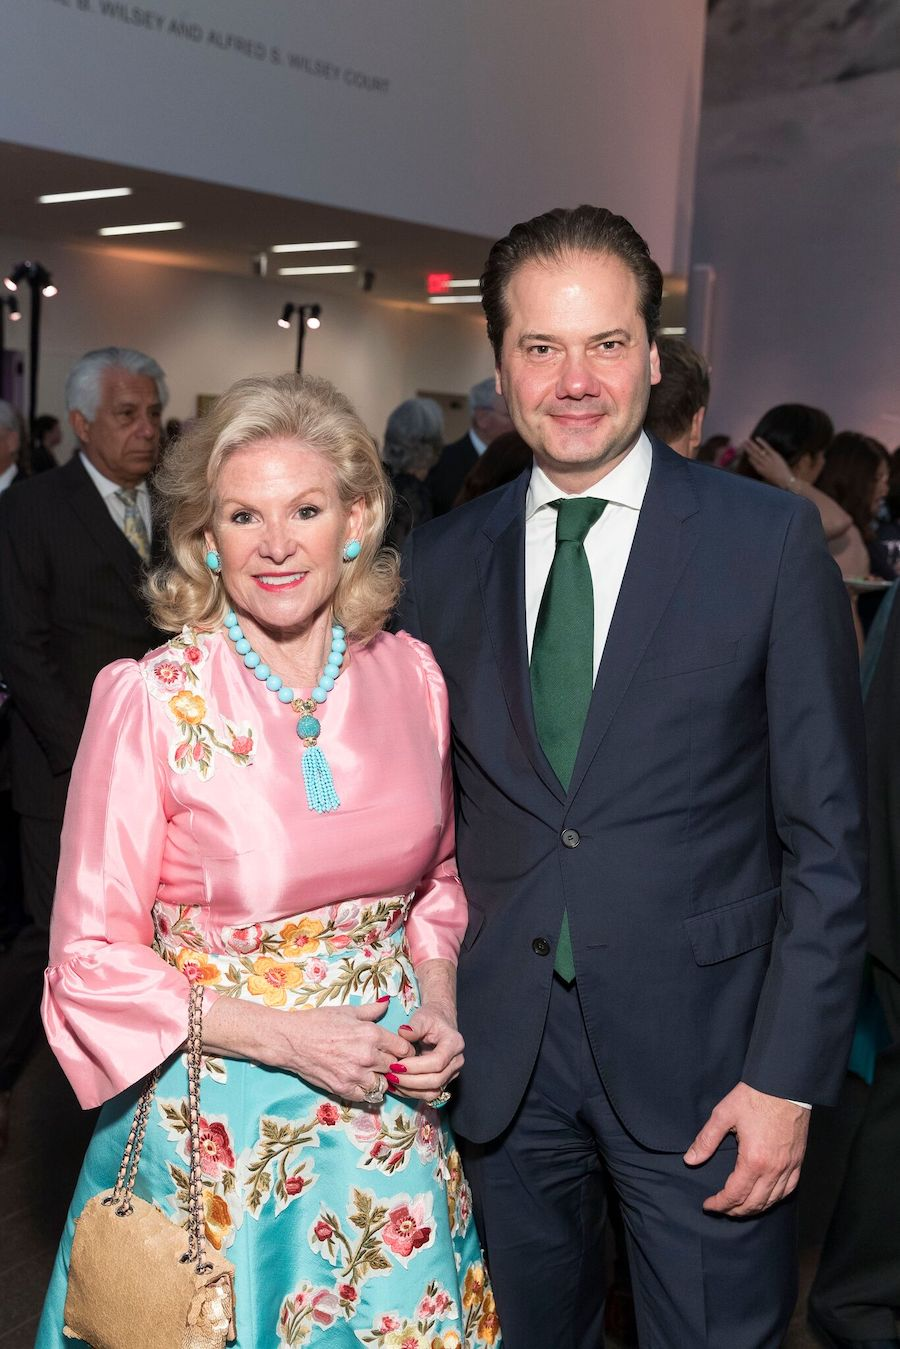 Wilsey and the former director of FAMSF Max Hollein at the 2018 Bouquets to Art Gala at the de Young museum